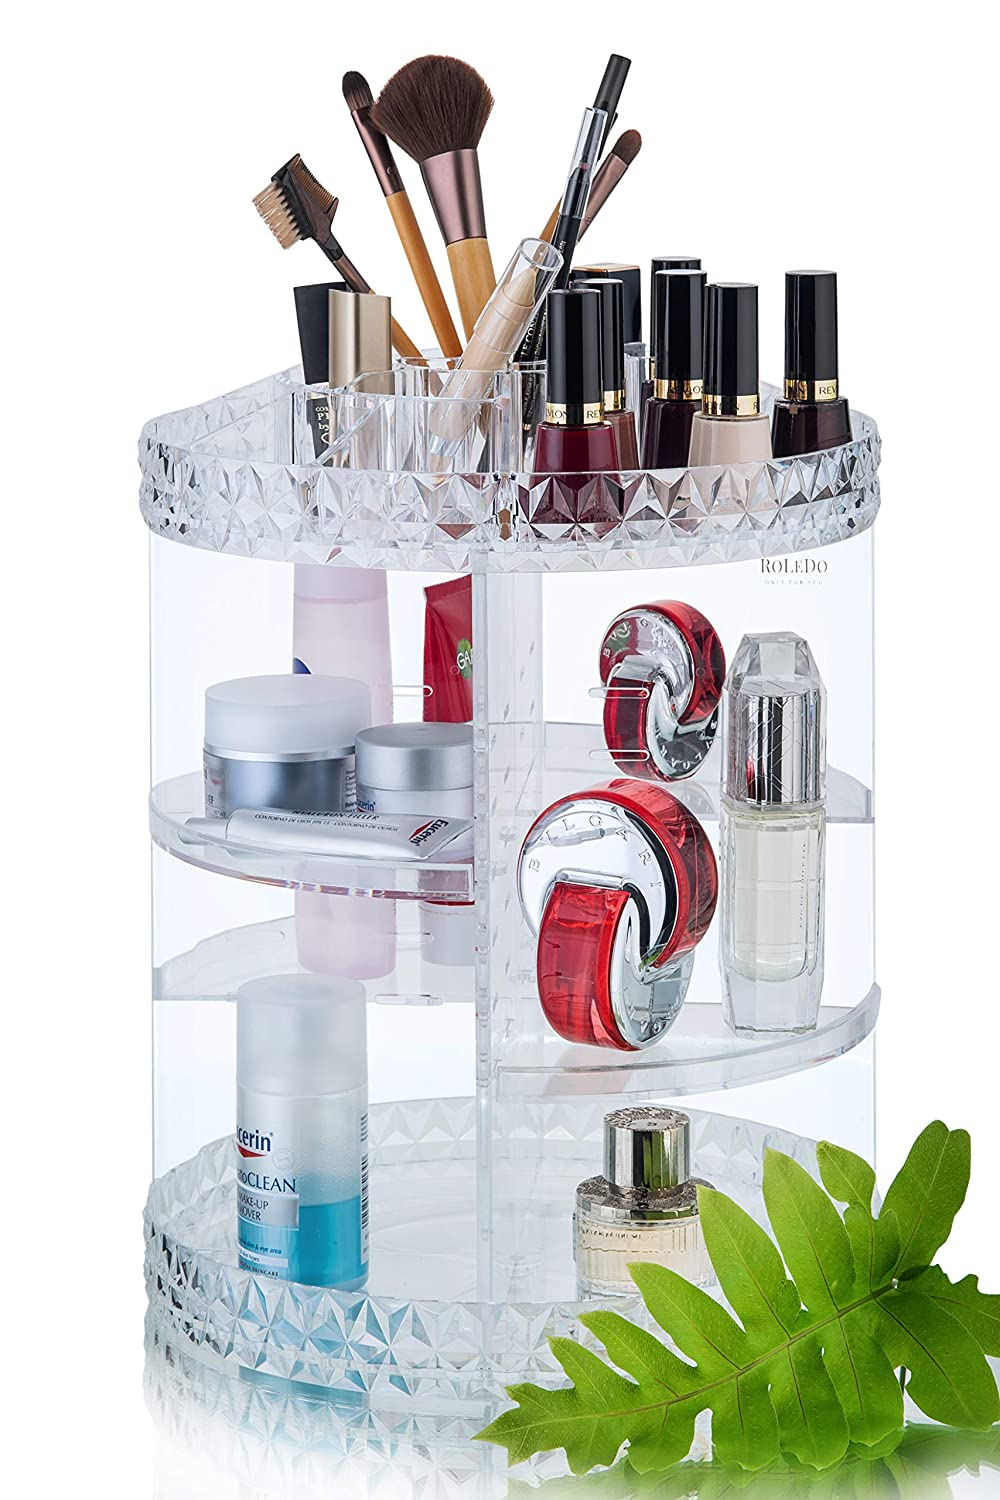 RoLeDo Makeup Organizer 360 Degree Rotating Crystal Adjustable Large Capacity Vanity Cosmetic Jewelry Storage Display Stand Tray Box Carousel Shelf Holder for Perfumes and Bathroom Clear, Acrylic